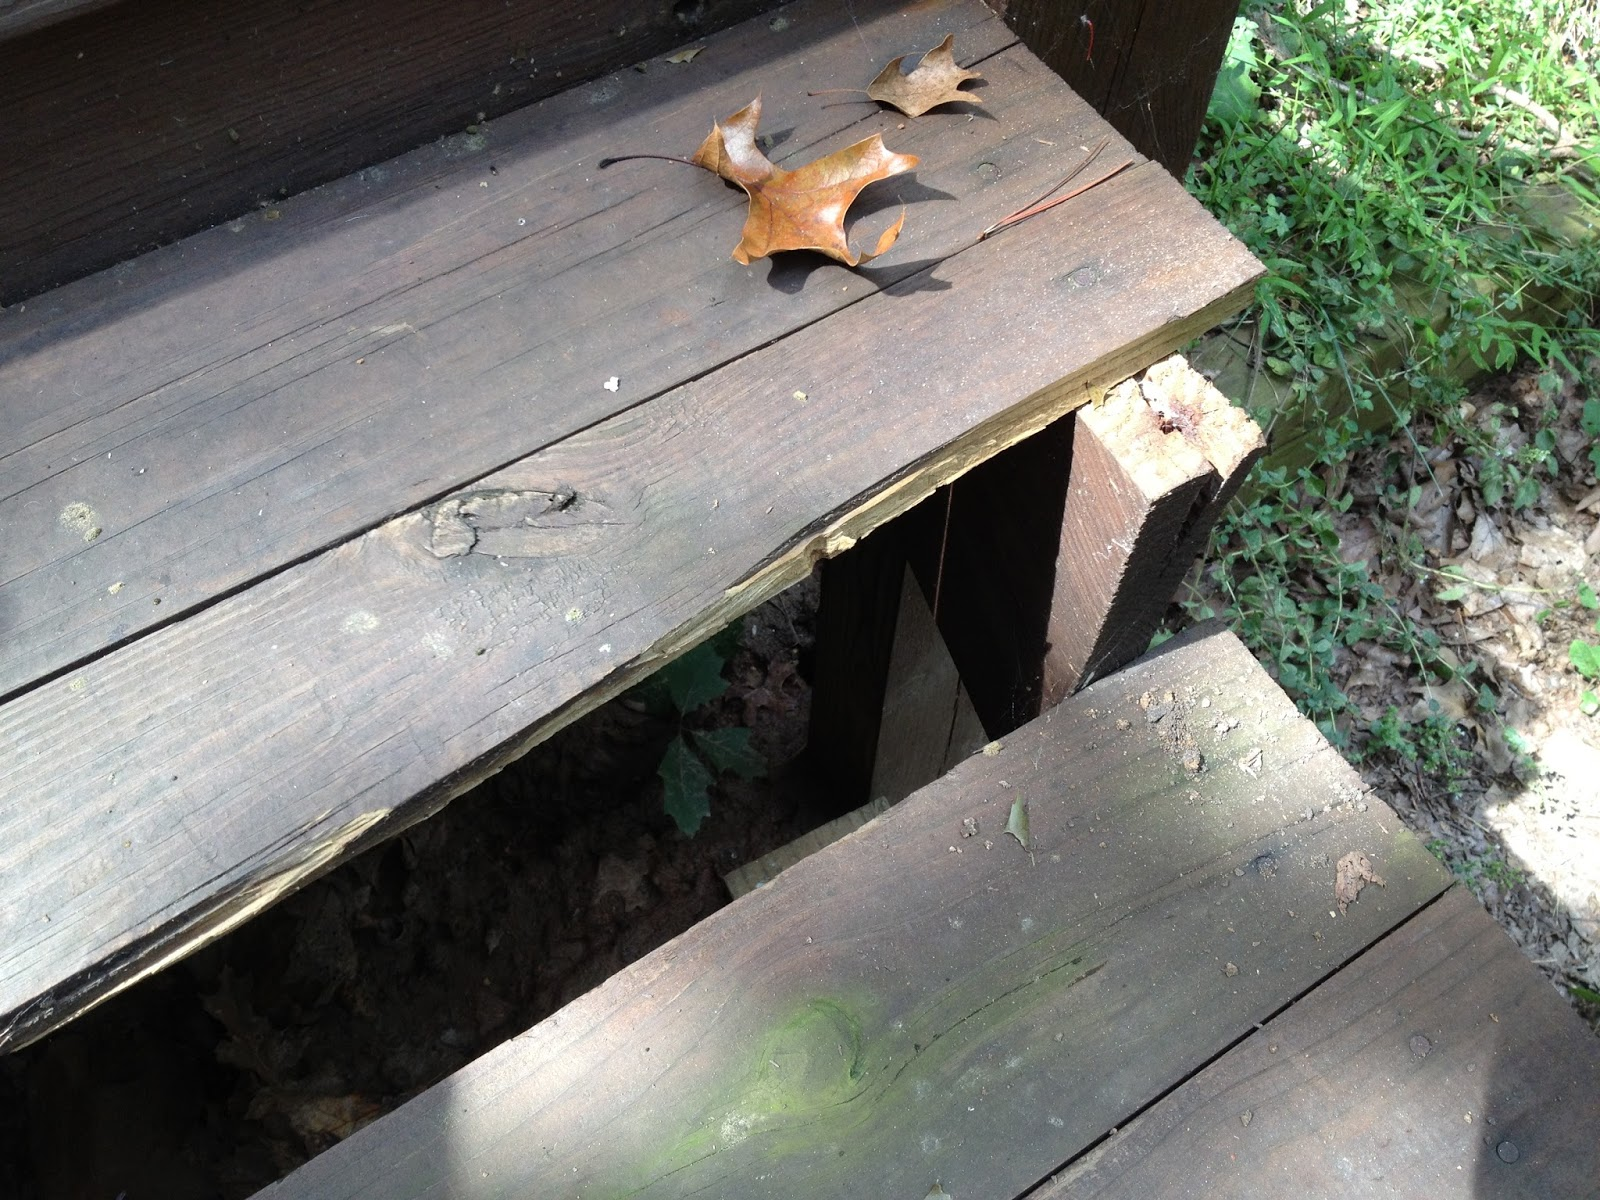 It Was Rapidly Becoming A Major Safety Hazard. We Thought About Replacing  The Old Wood Decking With New Wood Decking, But Given How This Wood Has  Fallen ...